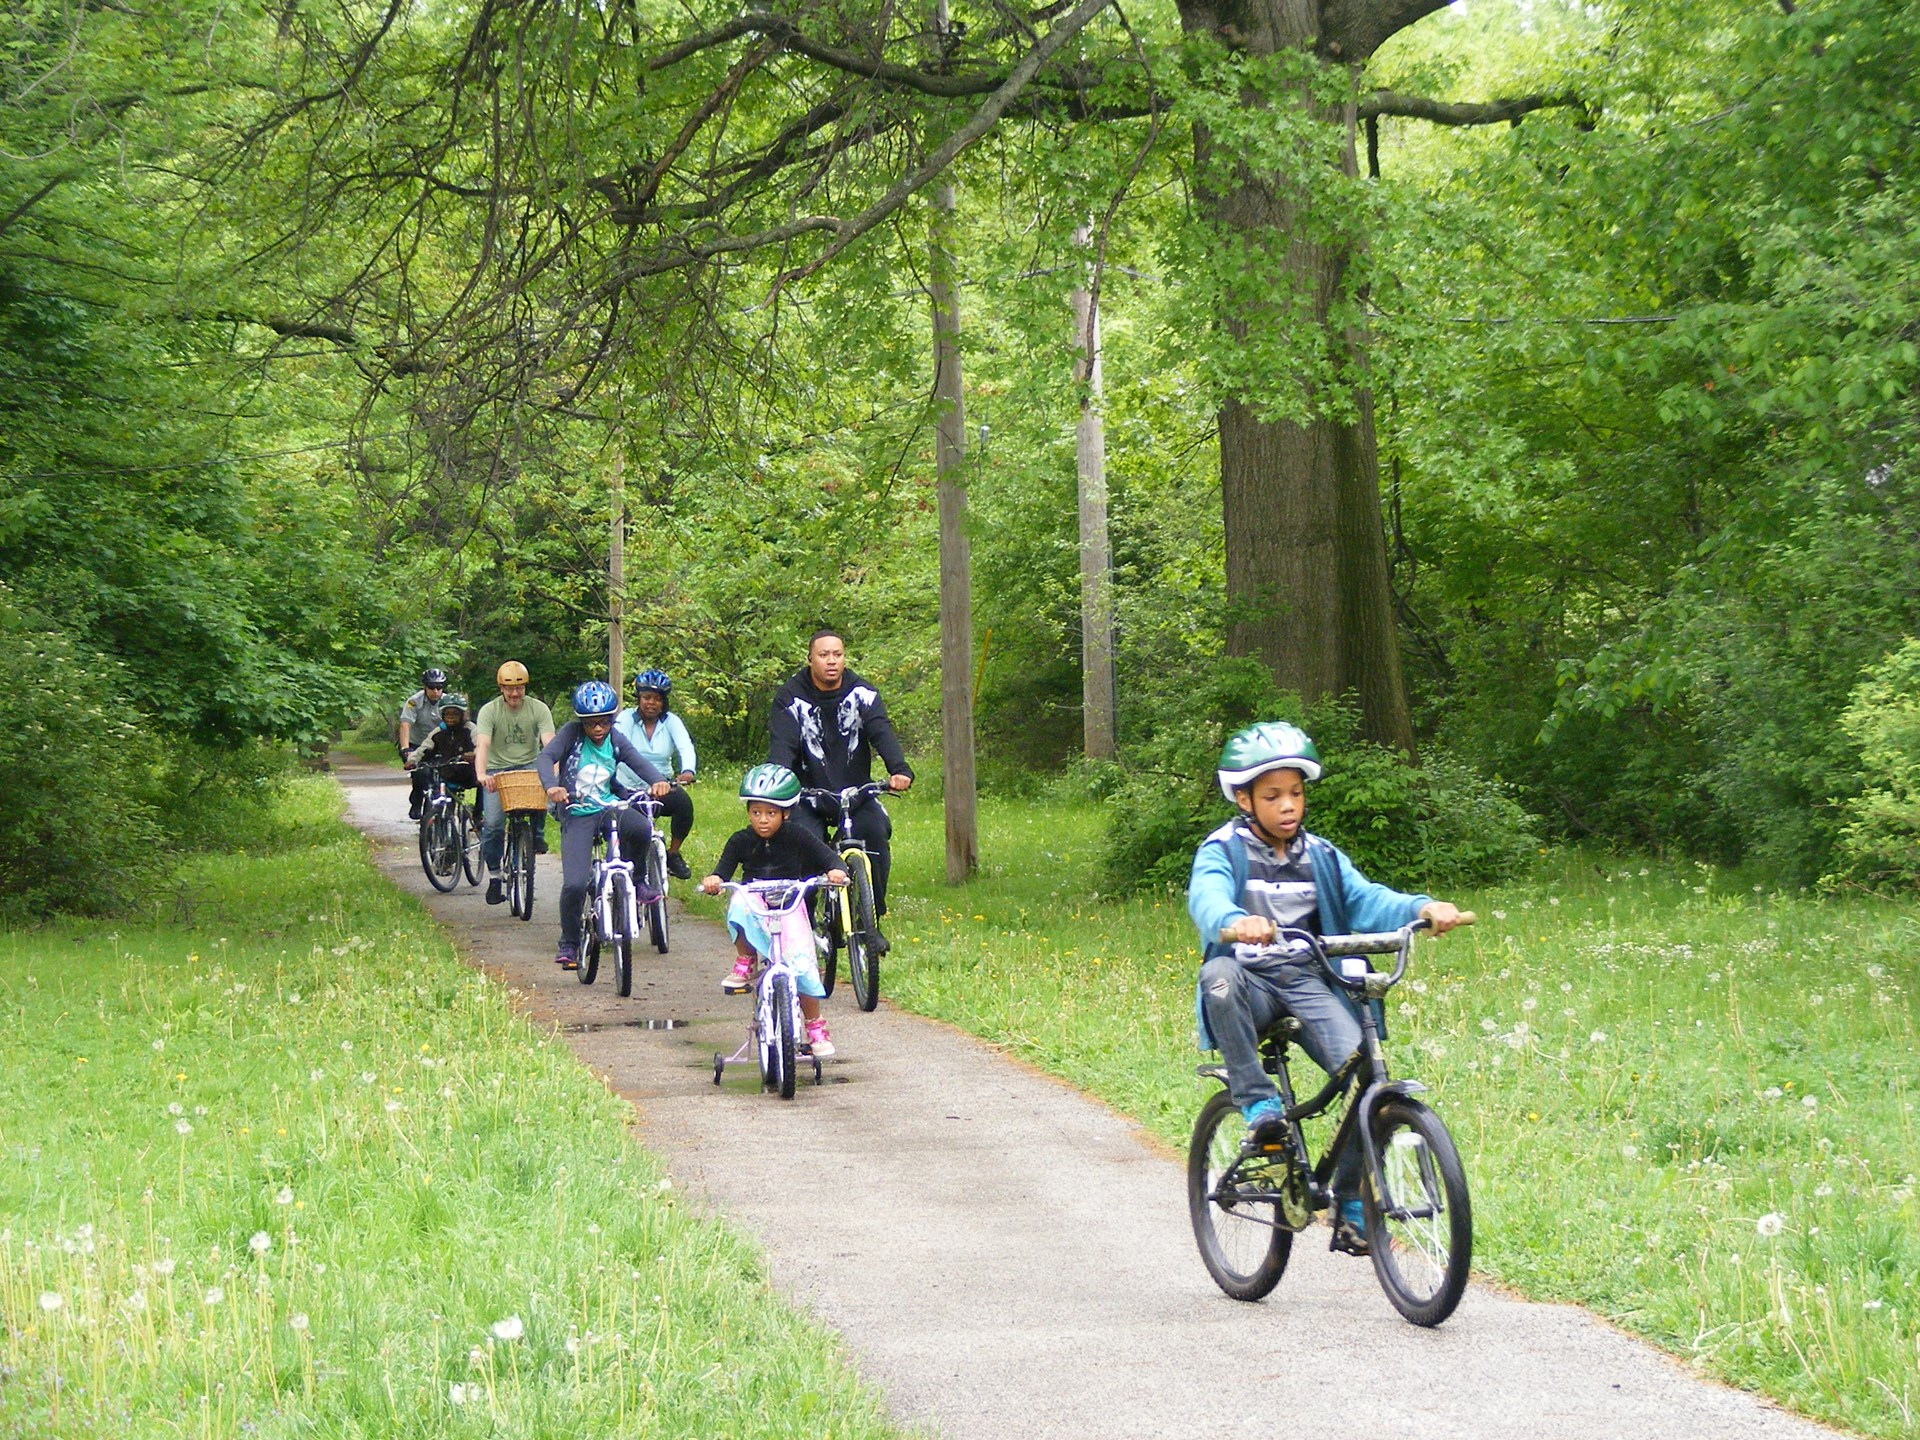 The end of the one mile ride - on the 'cinder path' beside the school